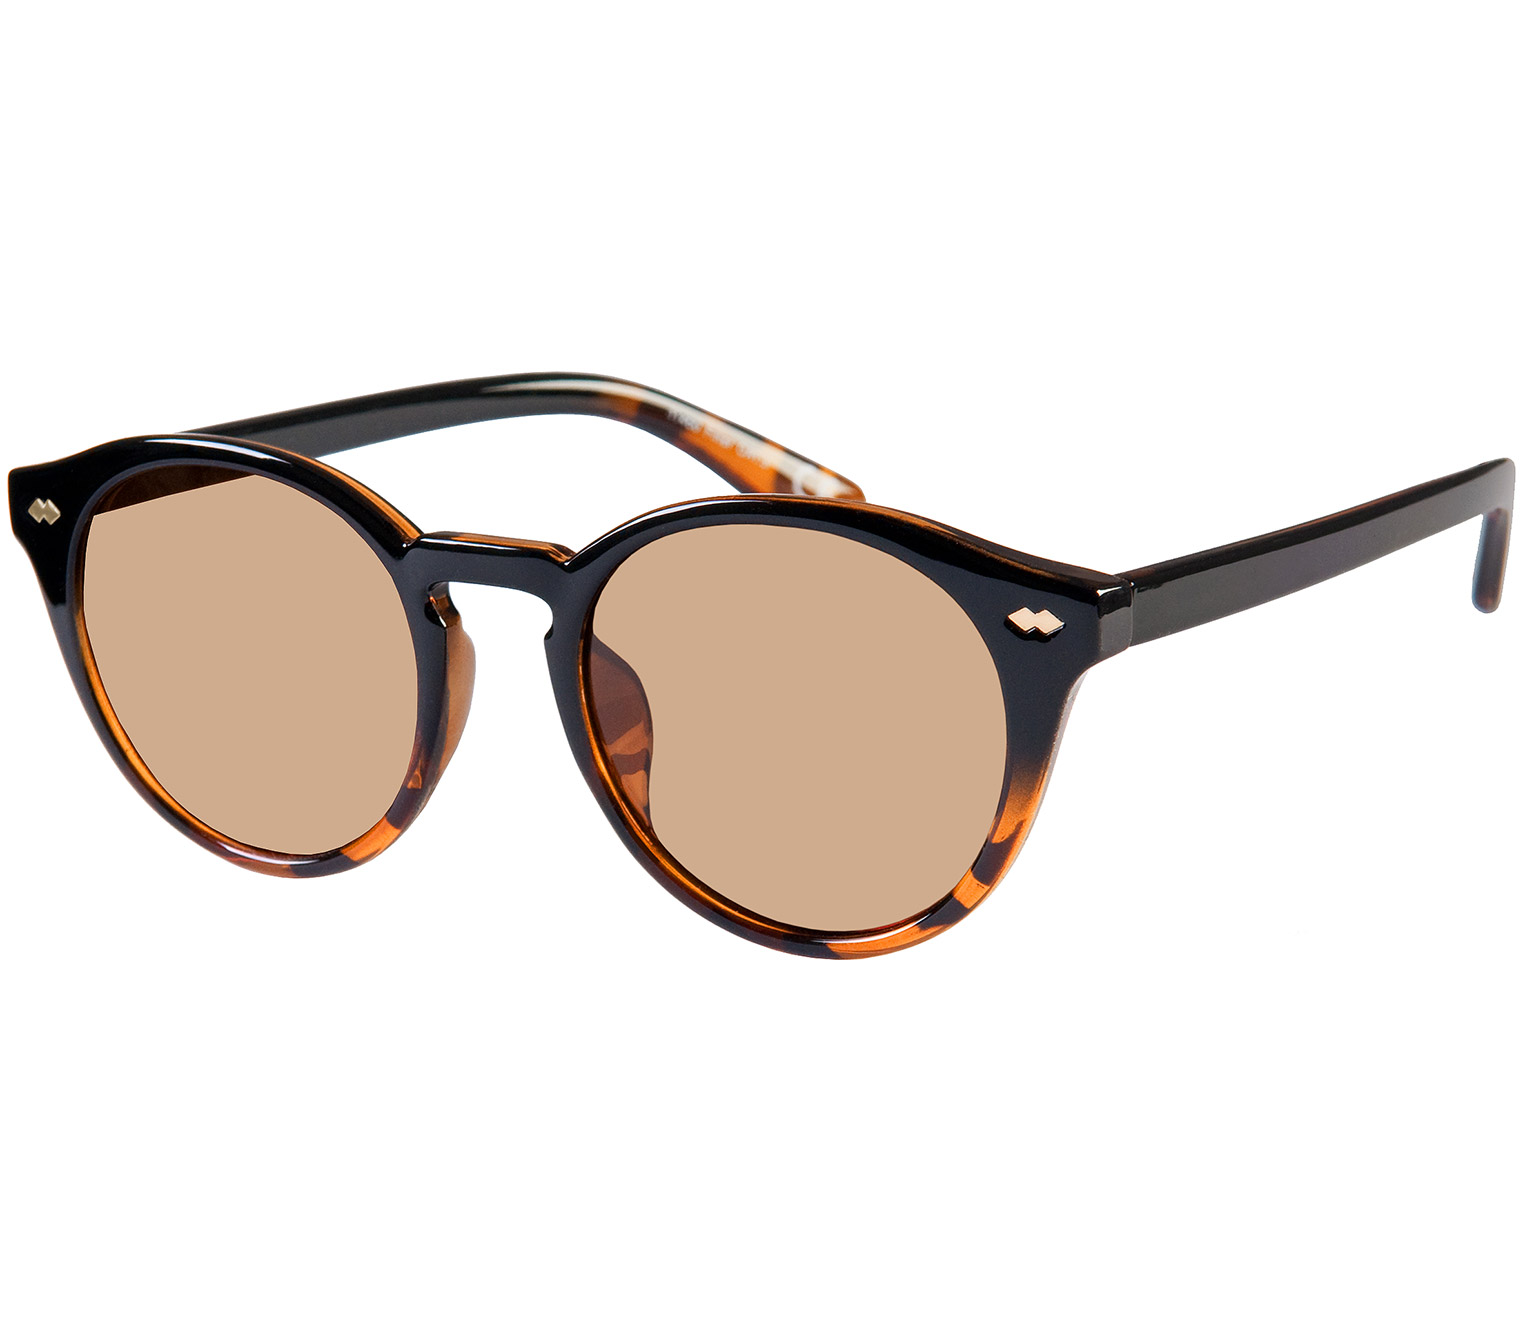 Main Image (Angle) - Lorenzo (Two Tone) Retro Sunglasses